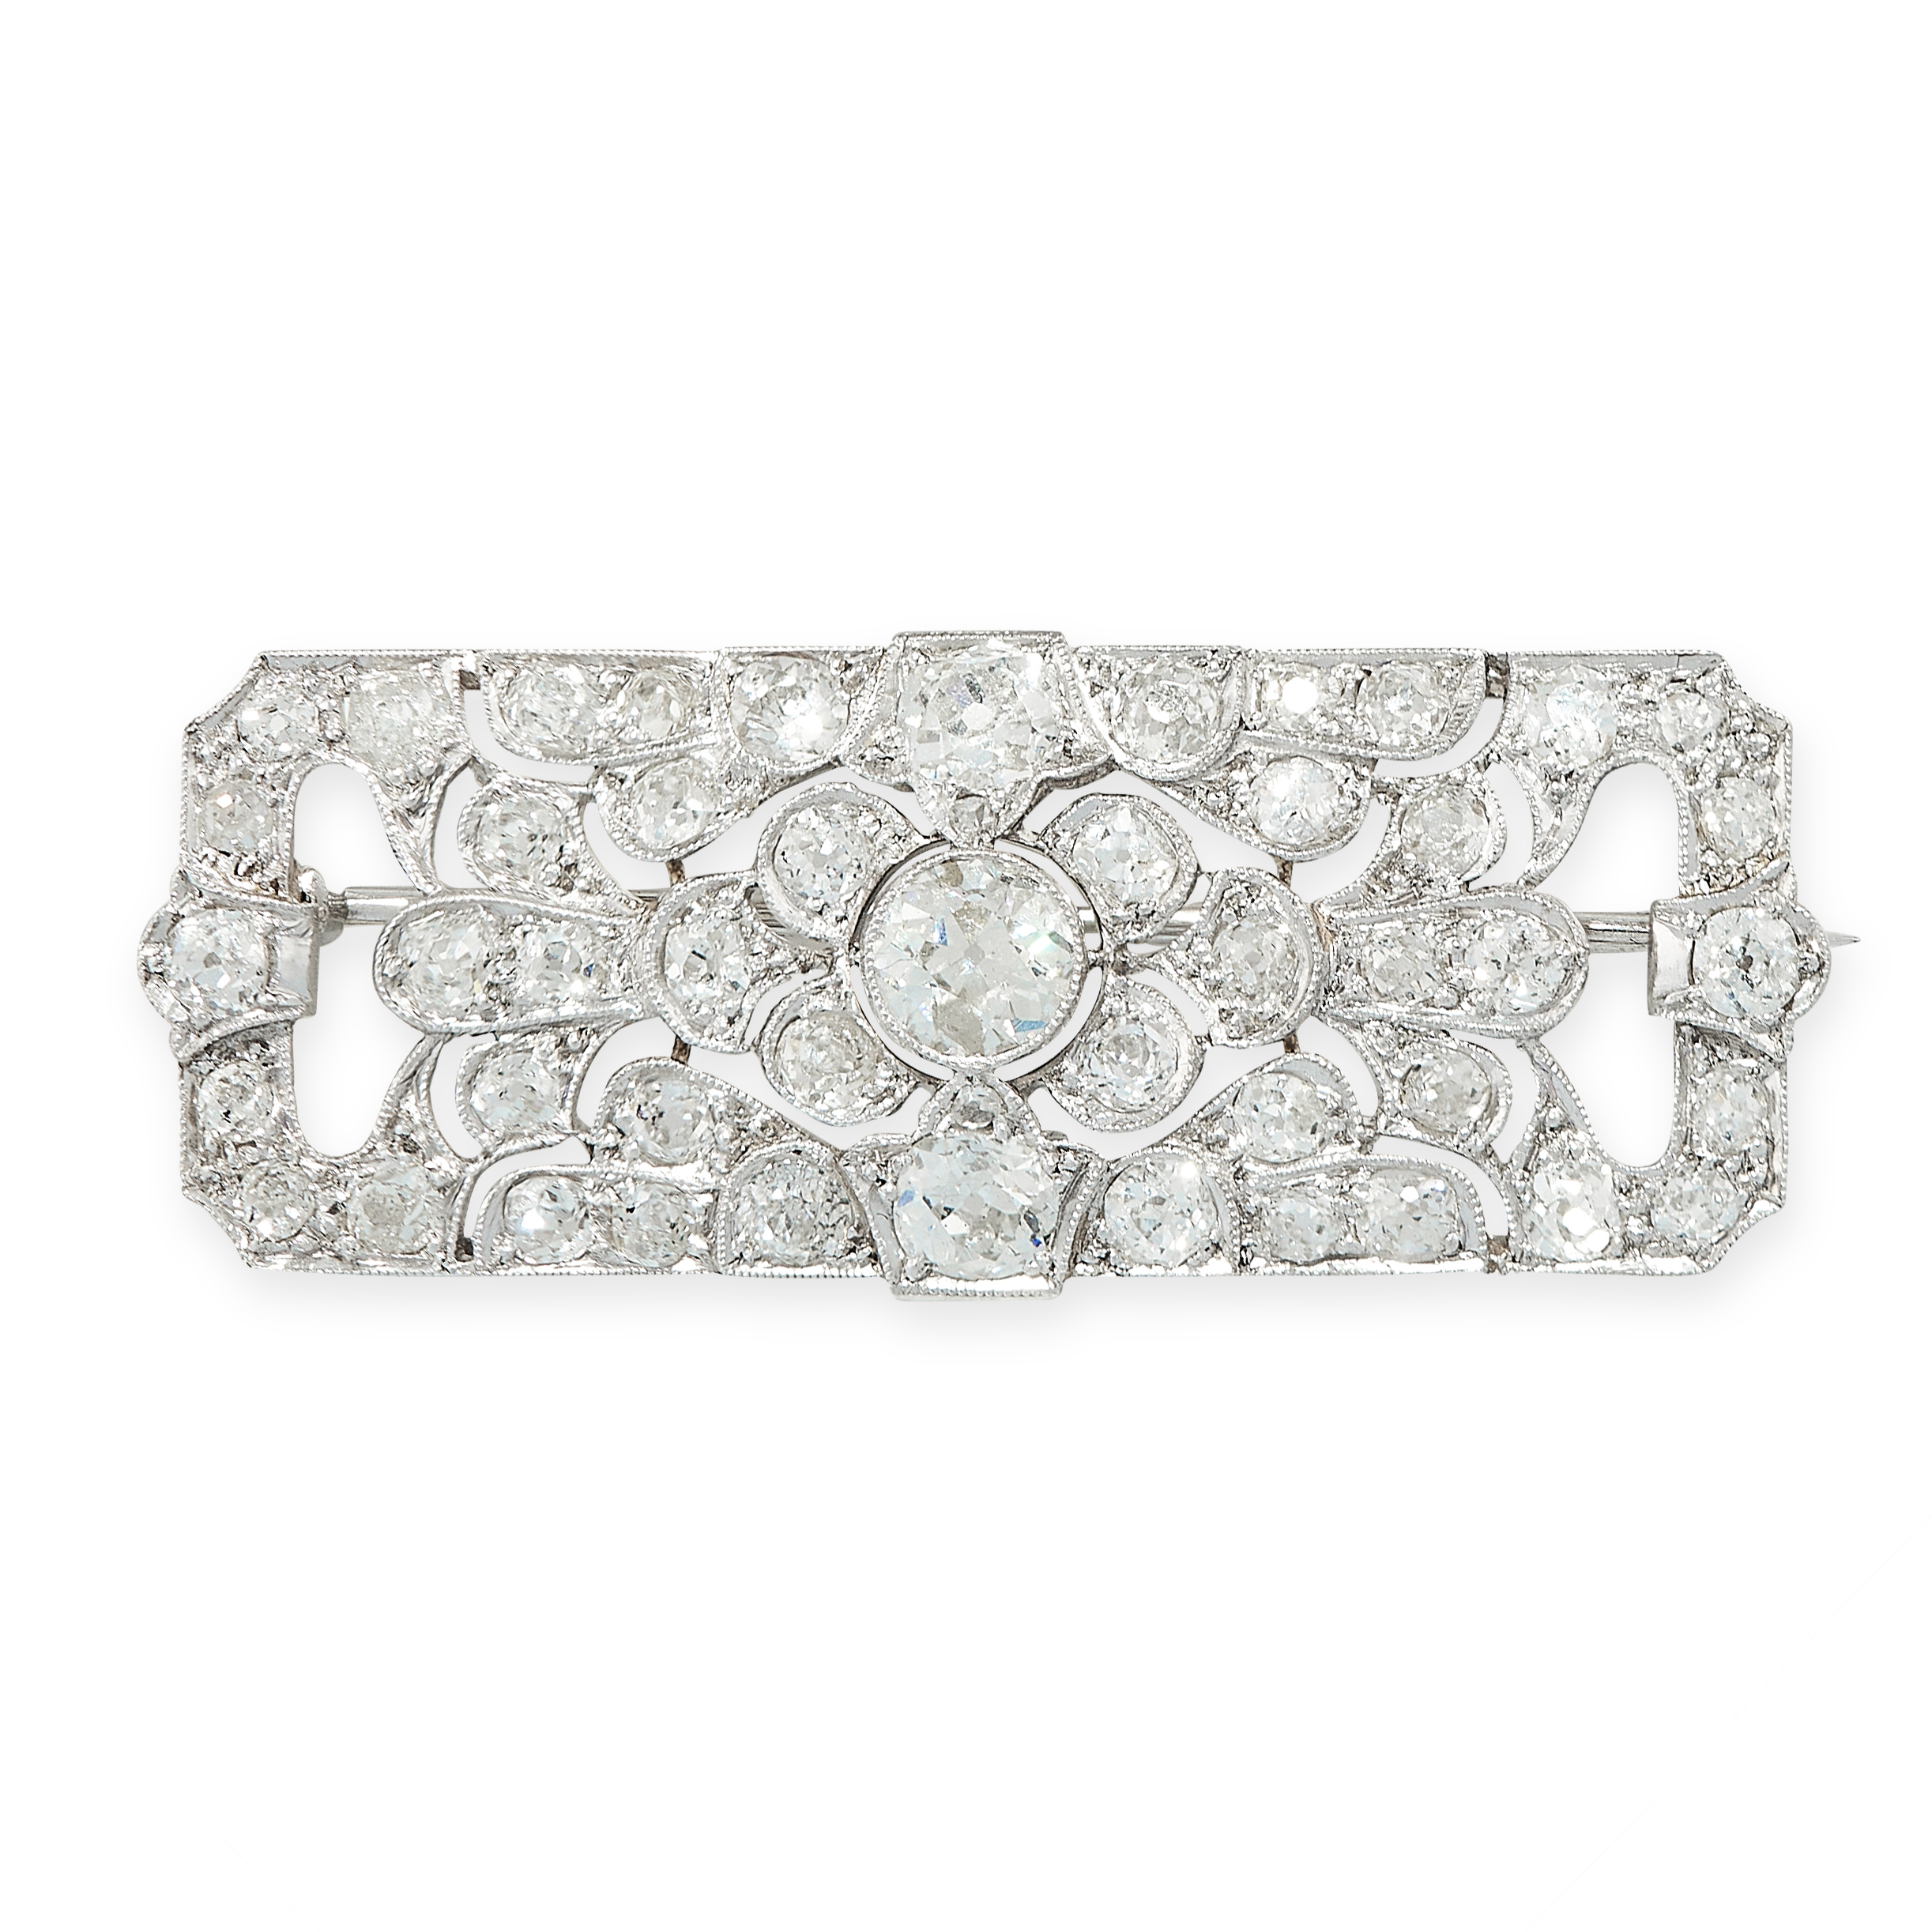 ART DECO DIAMOND BROOCH, EARLY 20TH CENTURY in rectangular form, set with old cut diamonds totalling